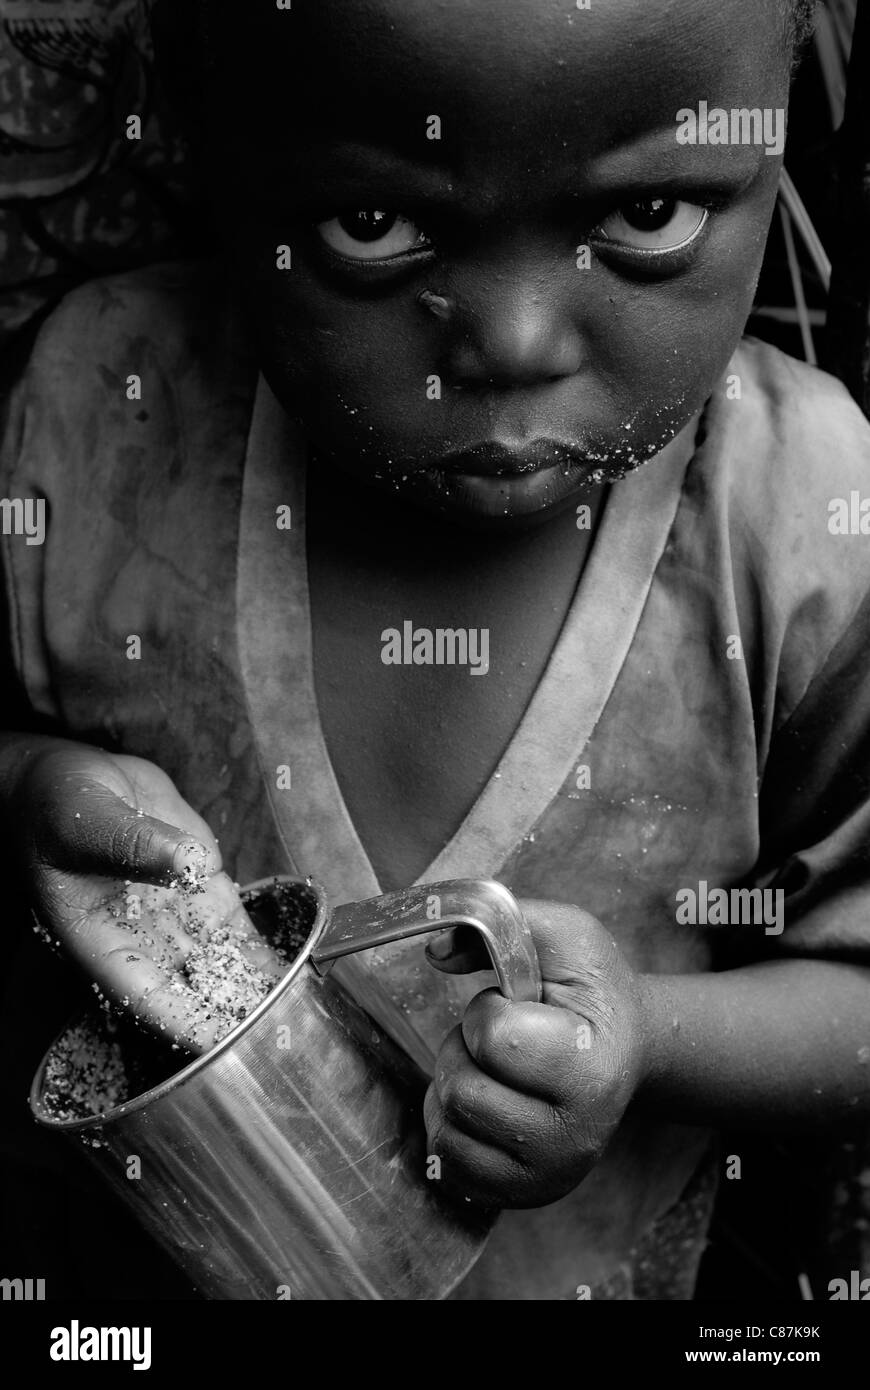 A displaced Congolese toddler eating in an IDP camp in North Kivu province in eastern Democratic Republic of Congo - Stock Image